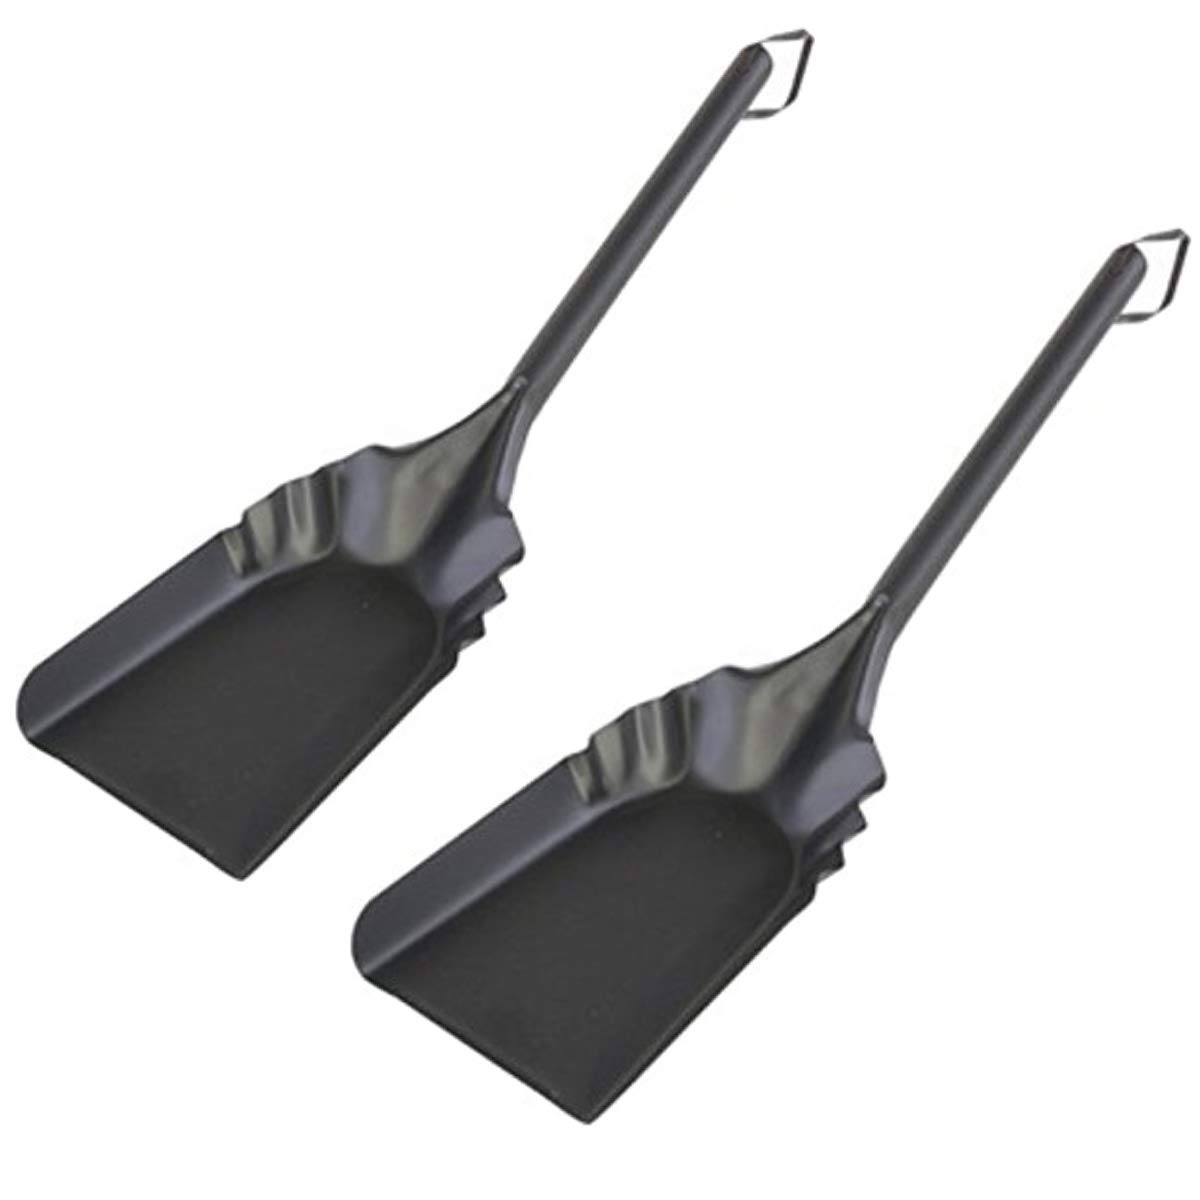 Rocky Mountain Goods Fireplace Ash Shovel Long - 20'' - Heavy Gauge Steel - Heat Resistant Paint/Finish - Leather Hang Strap - Coal Shovel for Wood Stove (2) by Rocky Mountain Radar